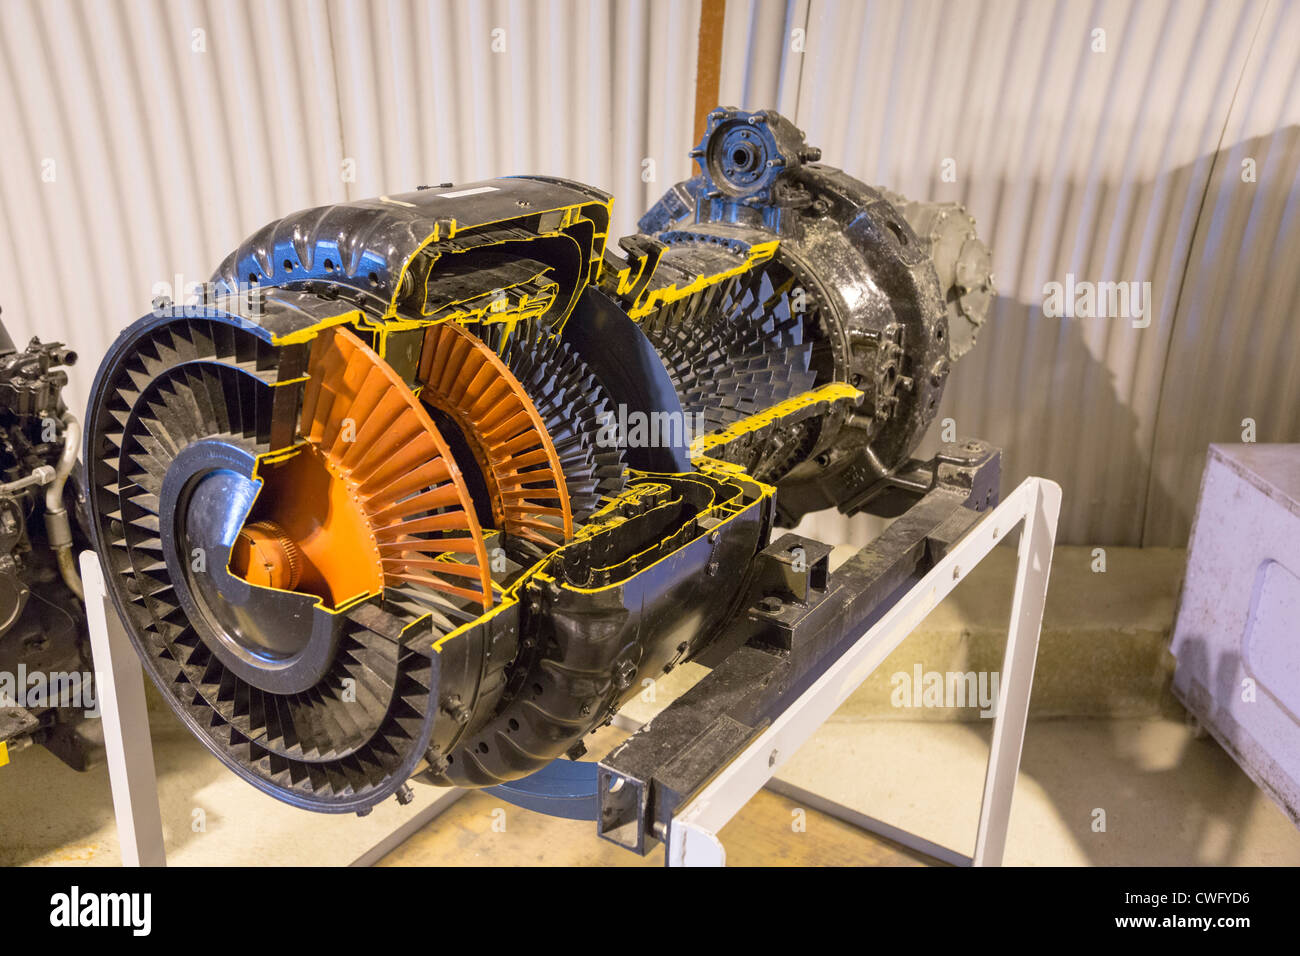 Newark Air Museum, Nottinghamshire, UK. Jet engine cutaway cut away - Stock Image